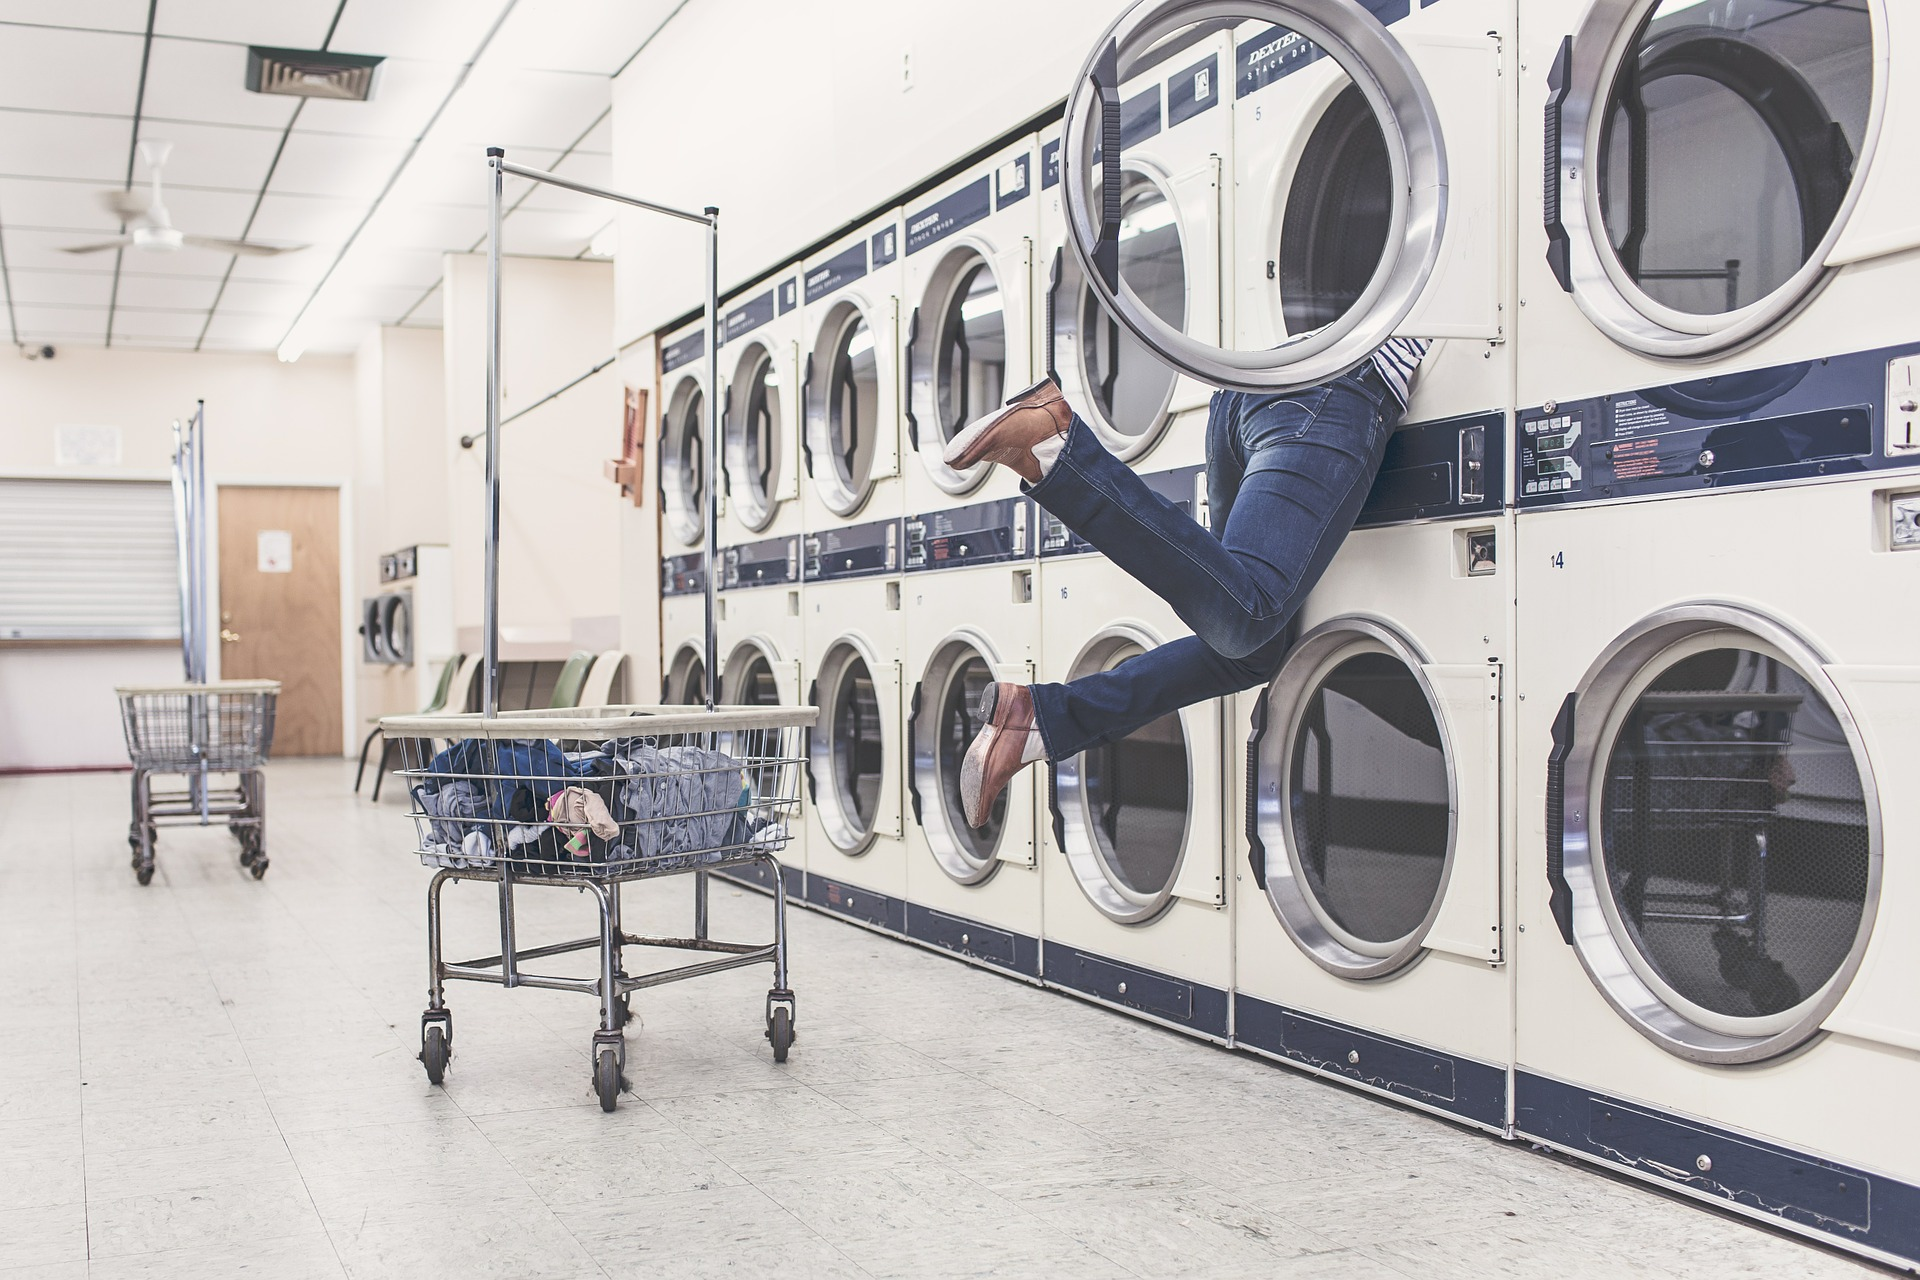 Even changing your laundry habits will affect the amount of energy usage.